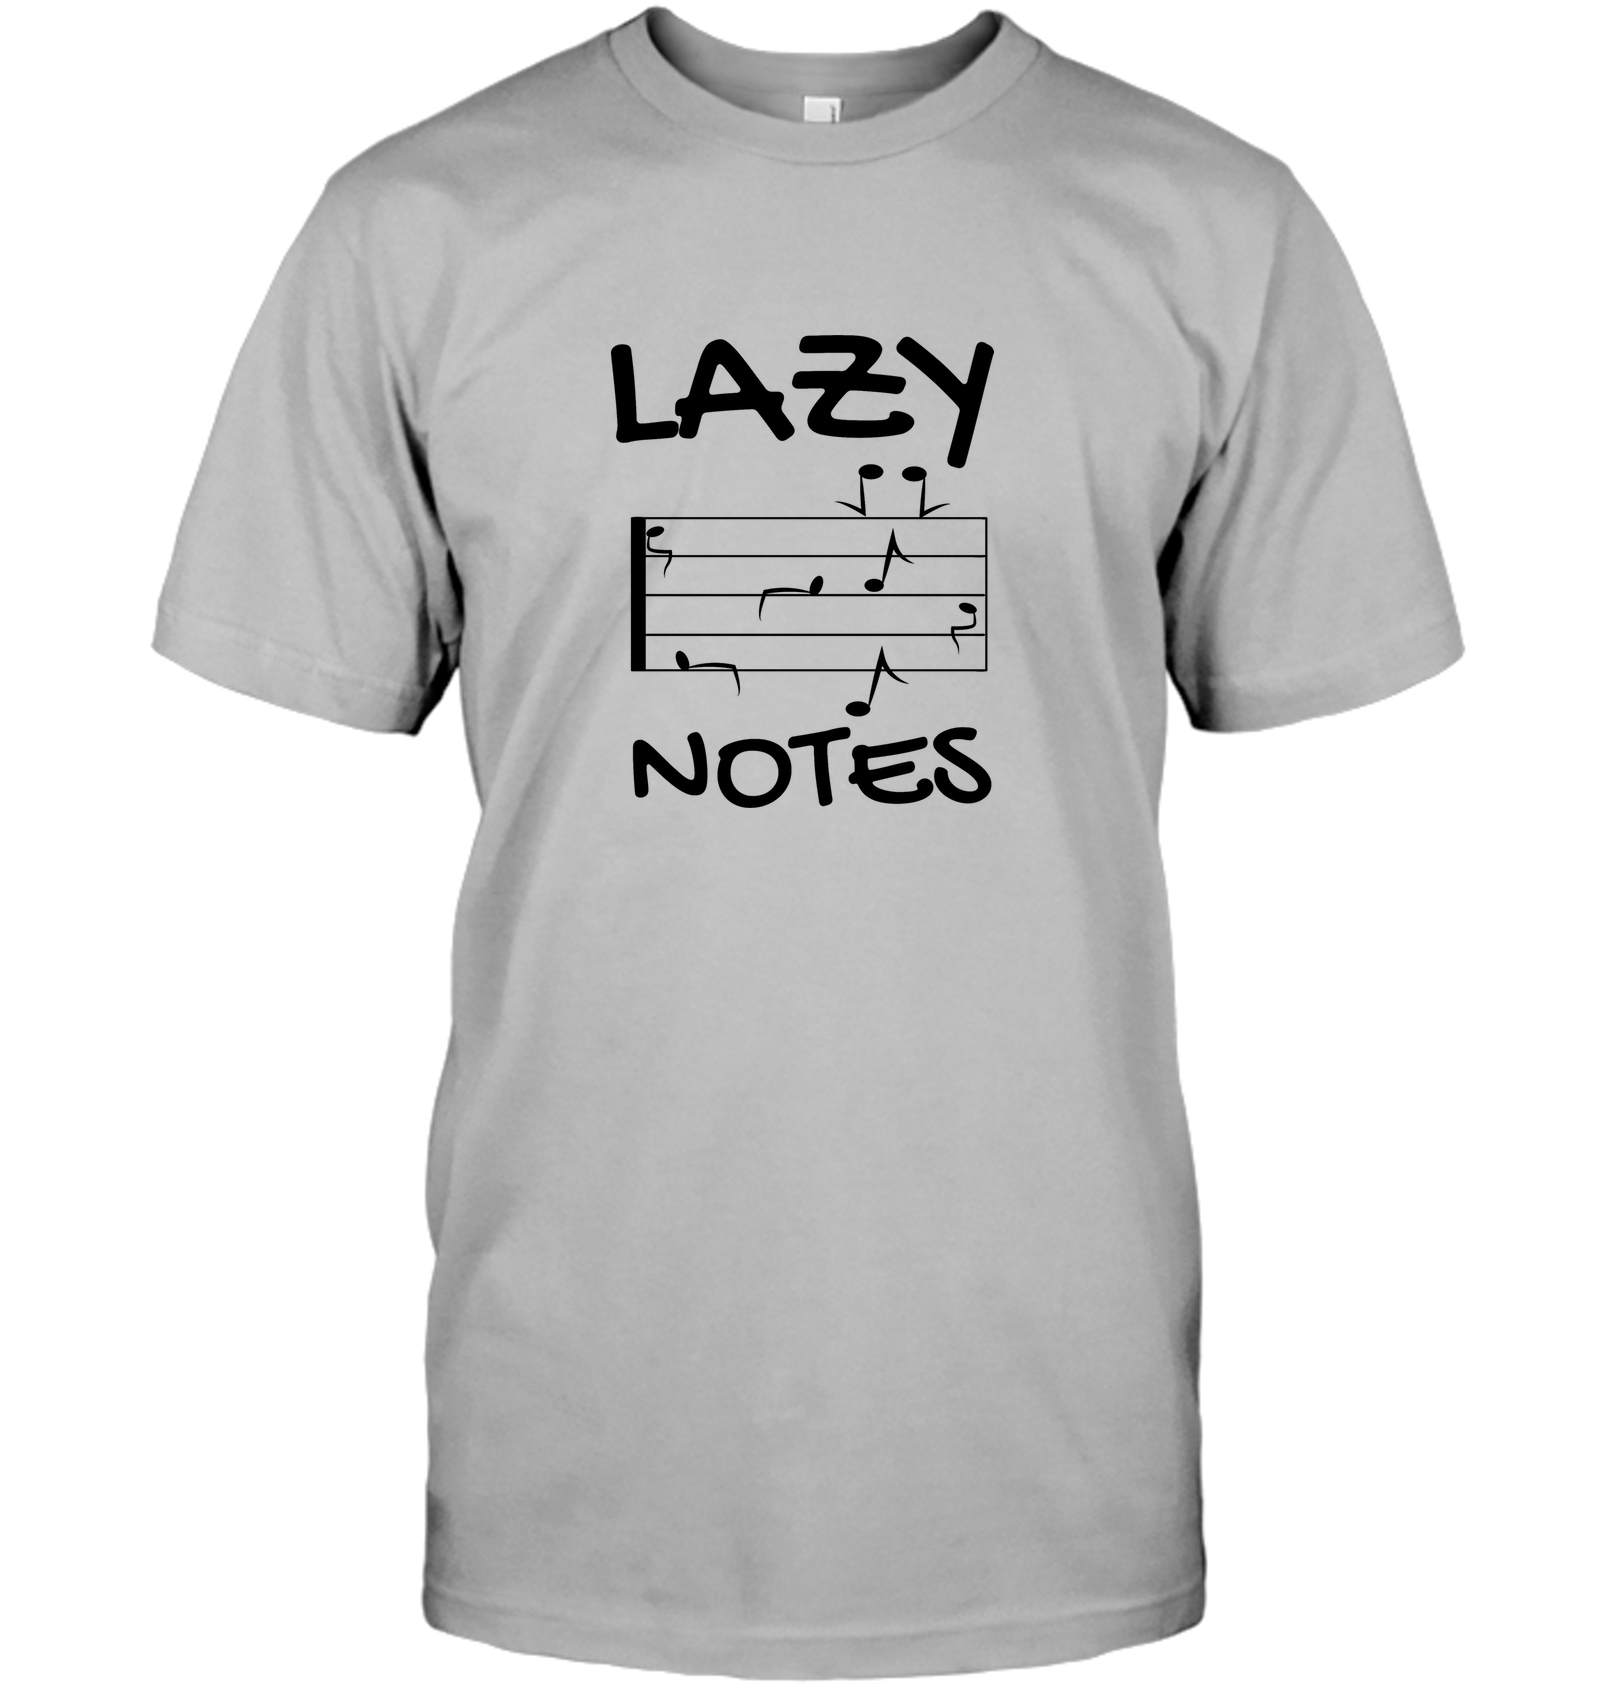 Lazy Notes (Black) - Hanes Adult Tagless® T-Shirt